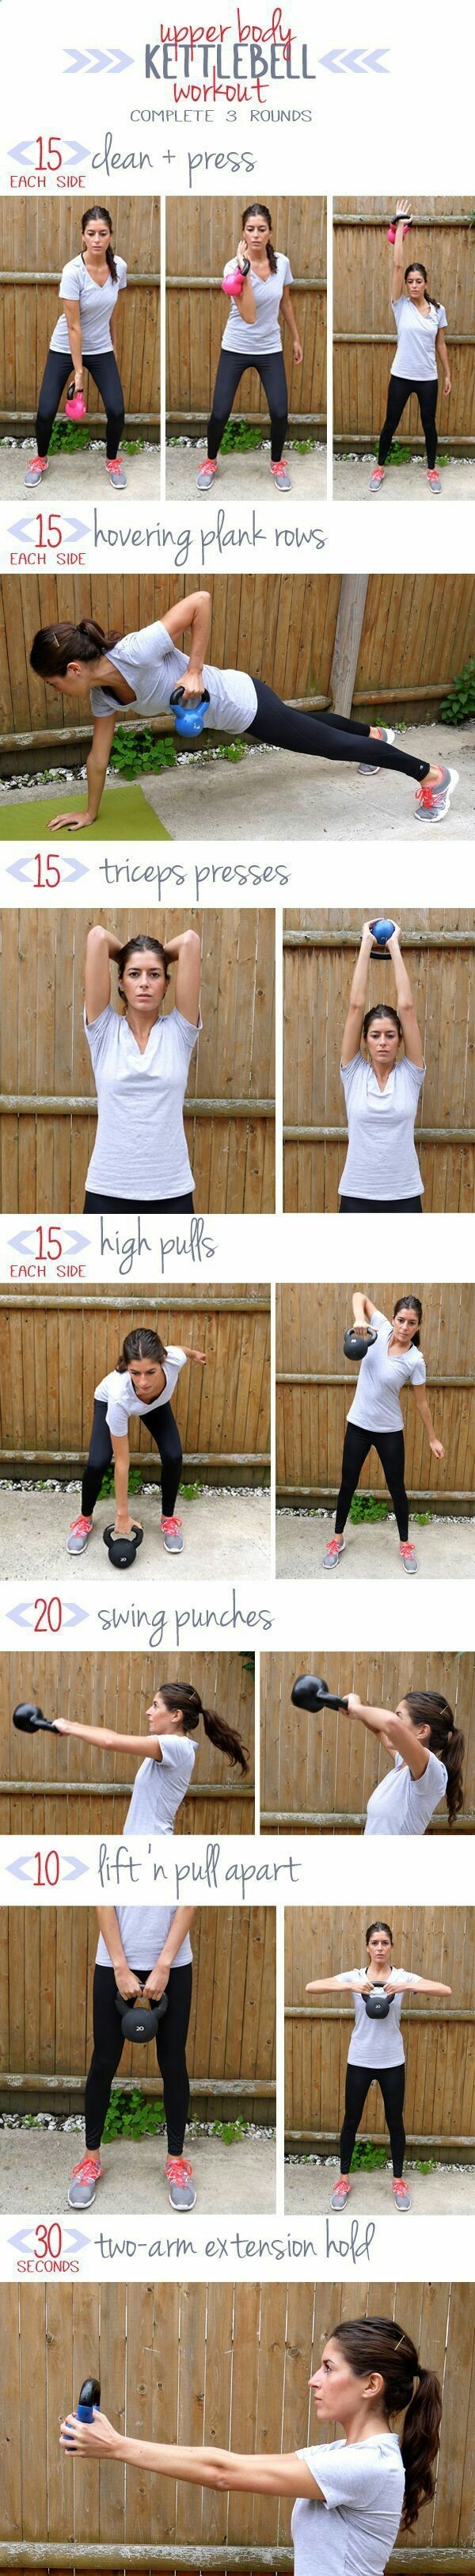 Simple Kettle Bell Exercise Workout Pinterest Full Body Circuit With Weights Workouts Upper Kettlebell Targets Shoulders Back Chest And Arms By Marjorie